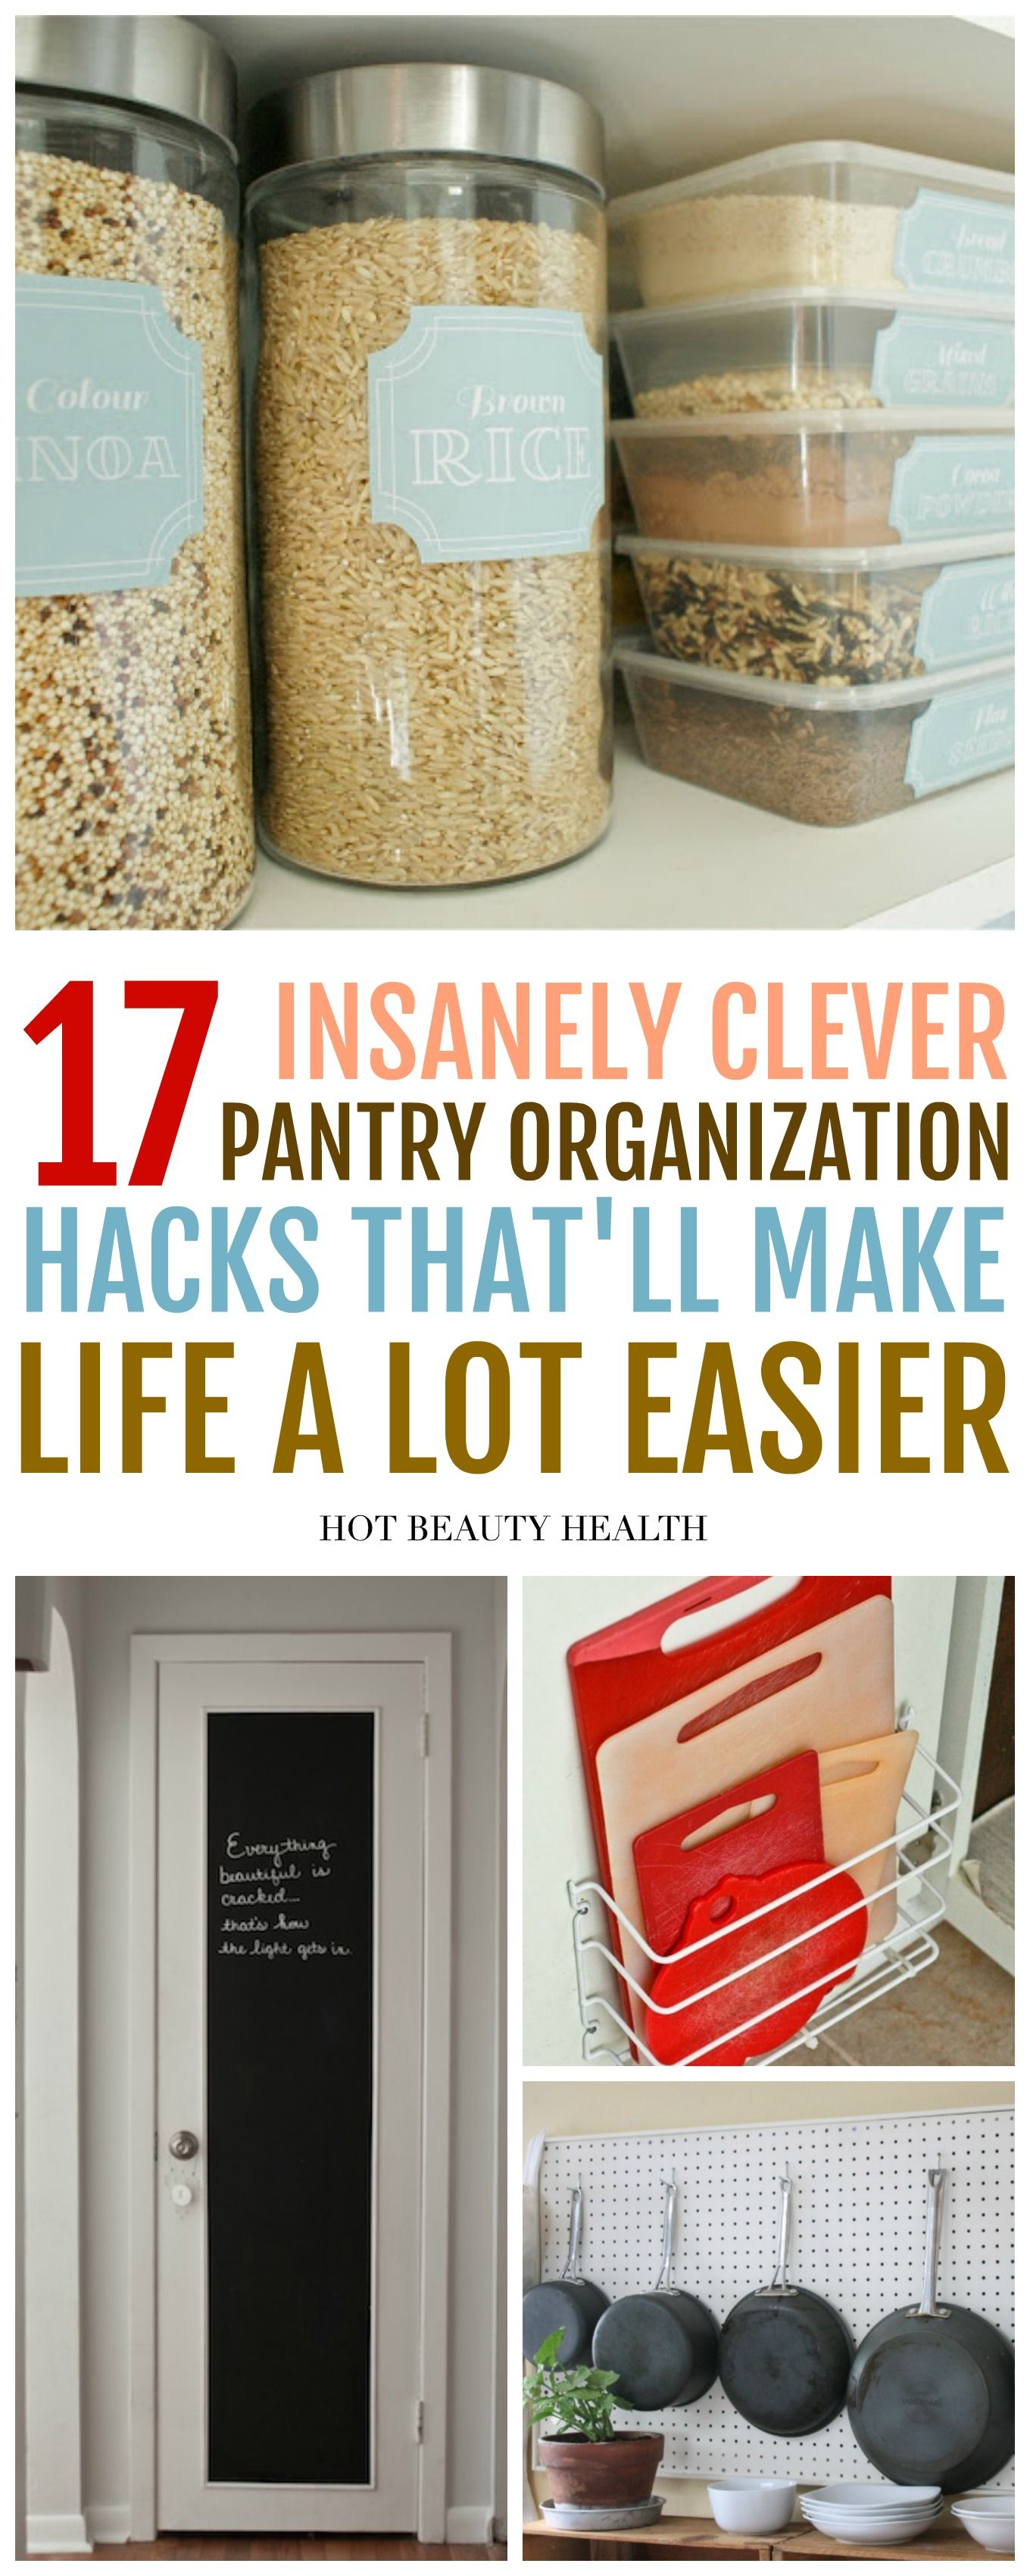 17 Insanely Clever Pantry Organization Hacks